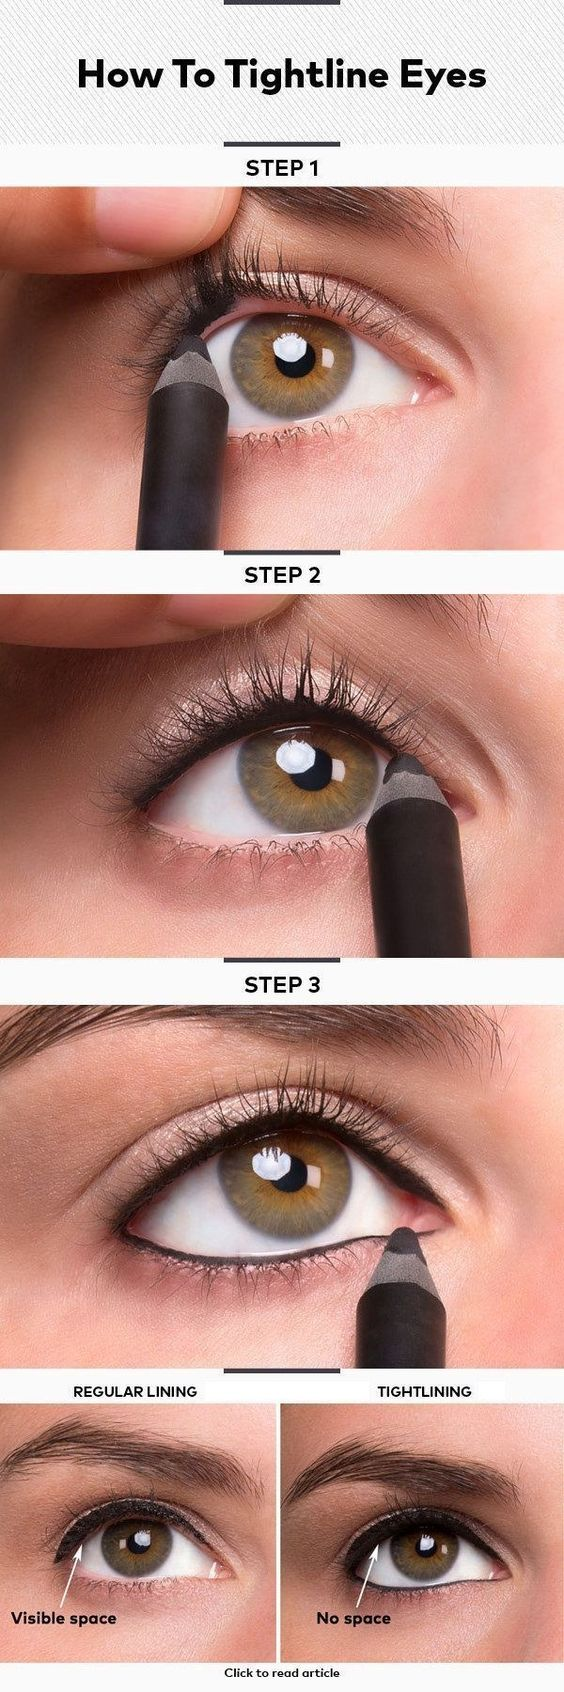 If you think eyeliner looks a little too intense on your face, try tightlining — which is putting the liner *beneath* your lash line. http://fancytemplestore.com